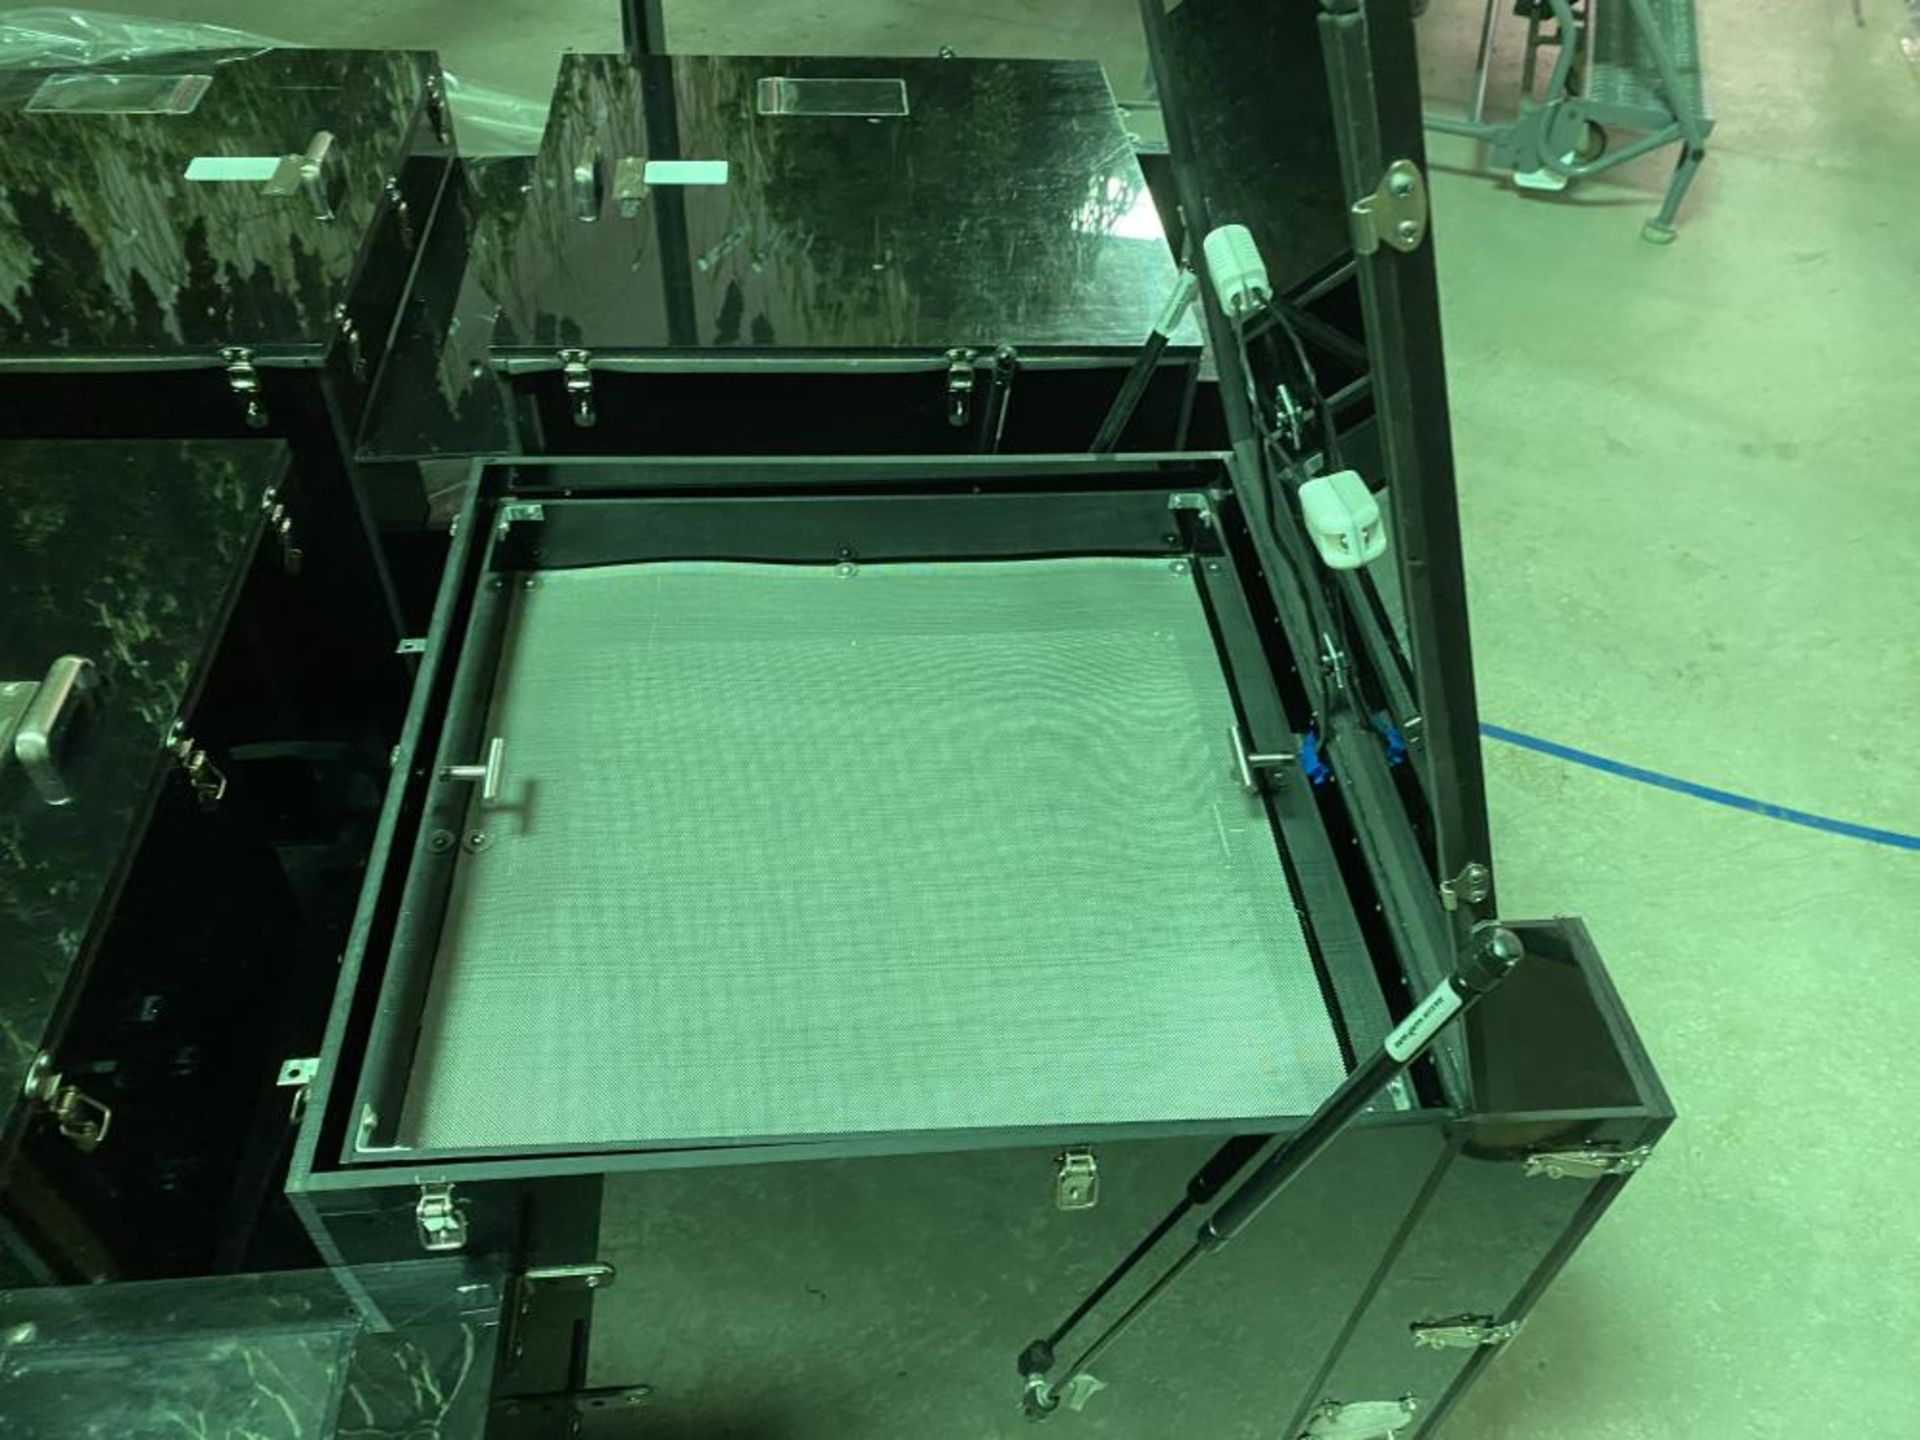 LOCATED IN ROCHELLE, IL- Used Agron Auto Cure XL Curing Chamber for Cannabis Flower. Model XL.40 - Image 3 of 4